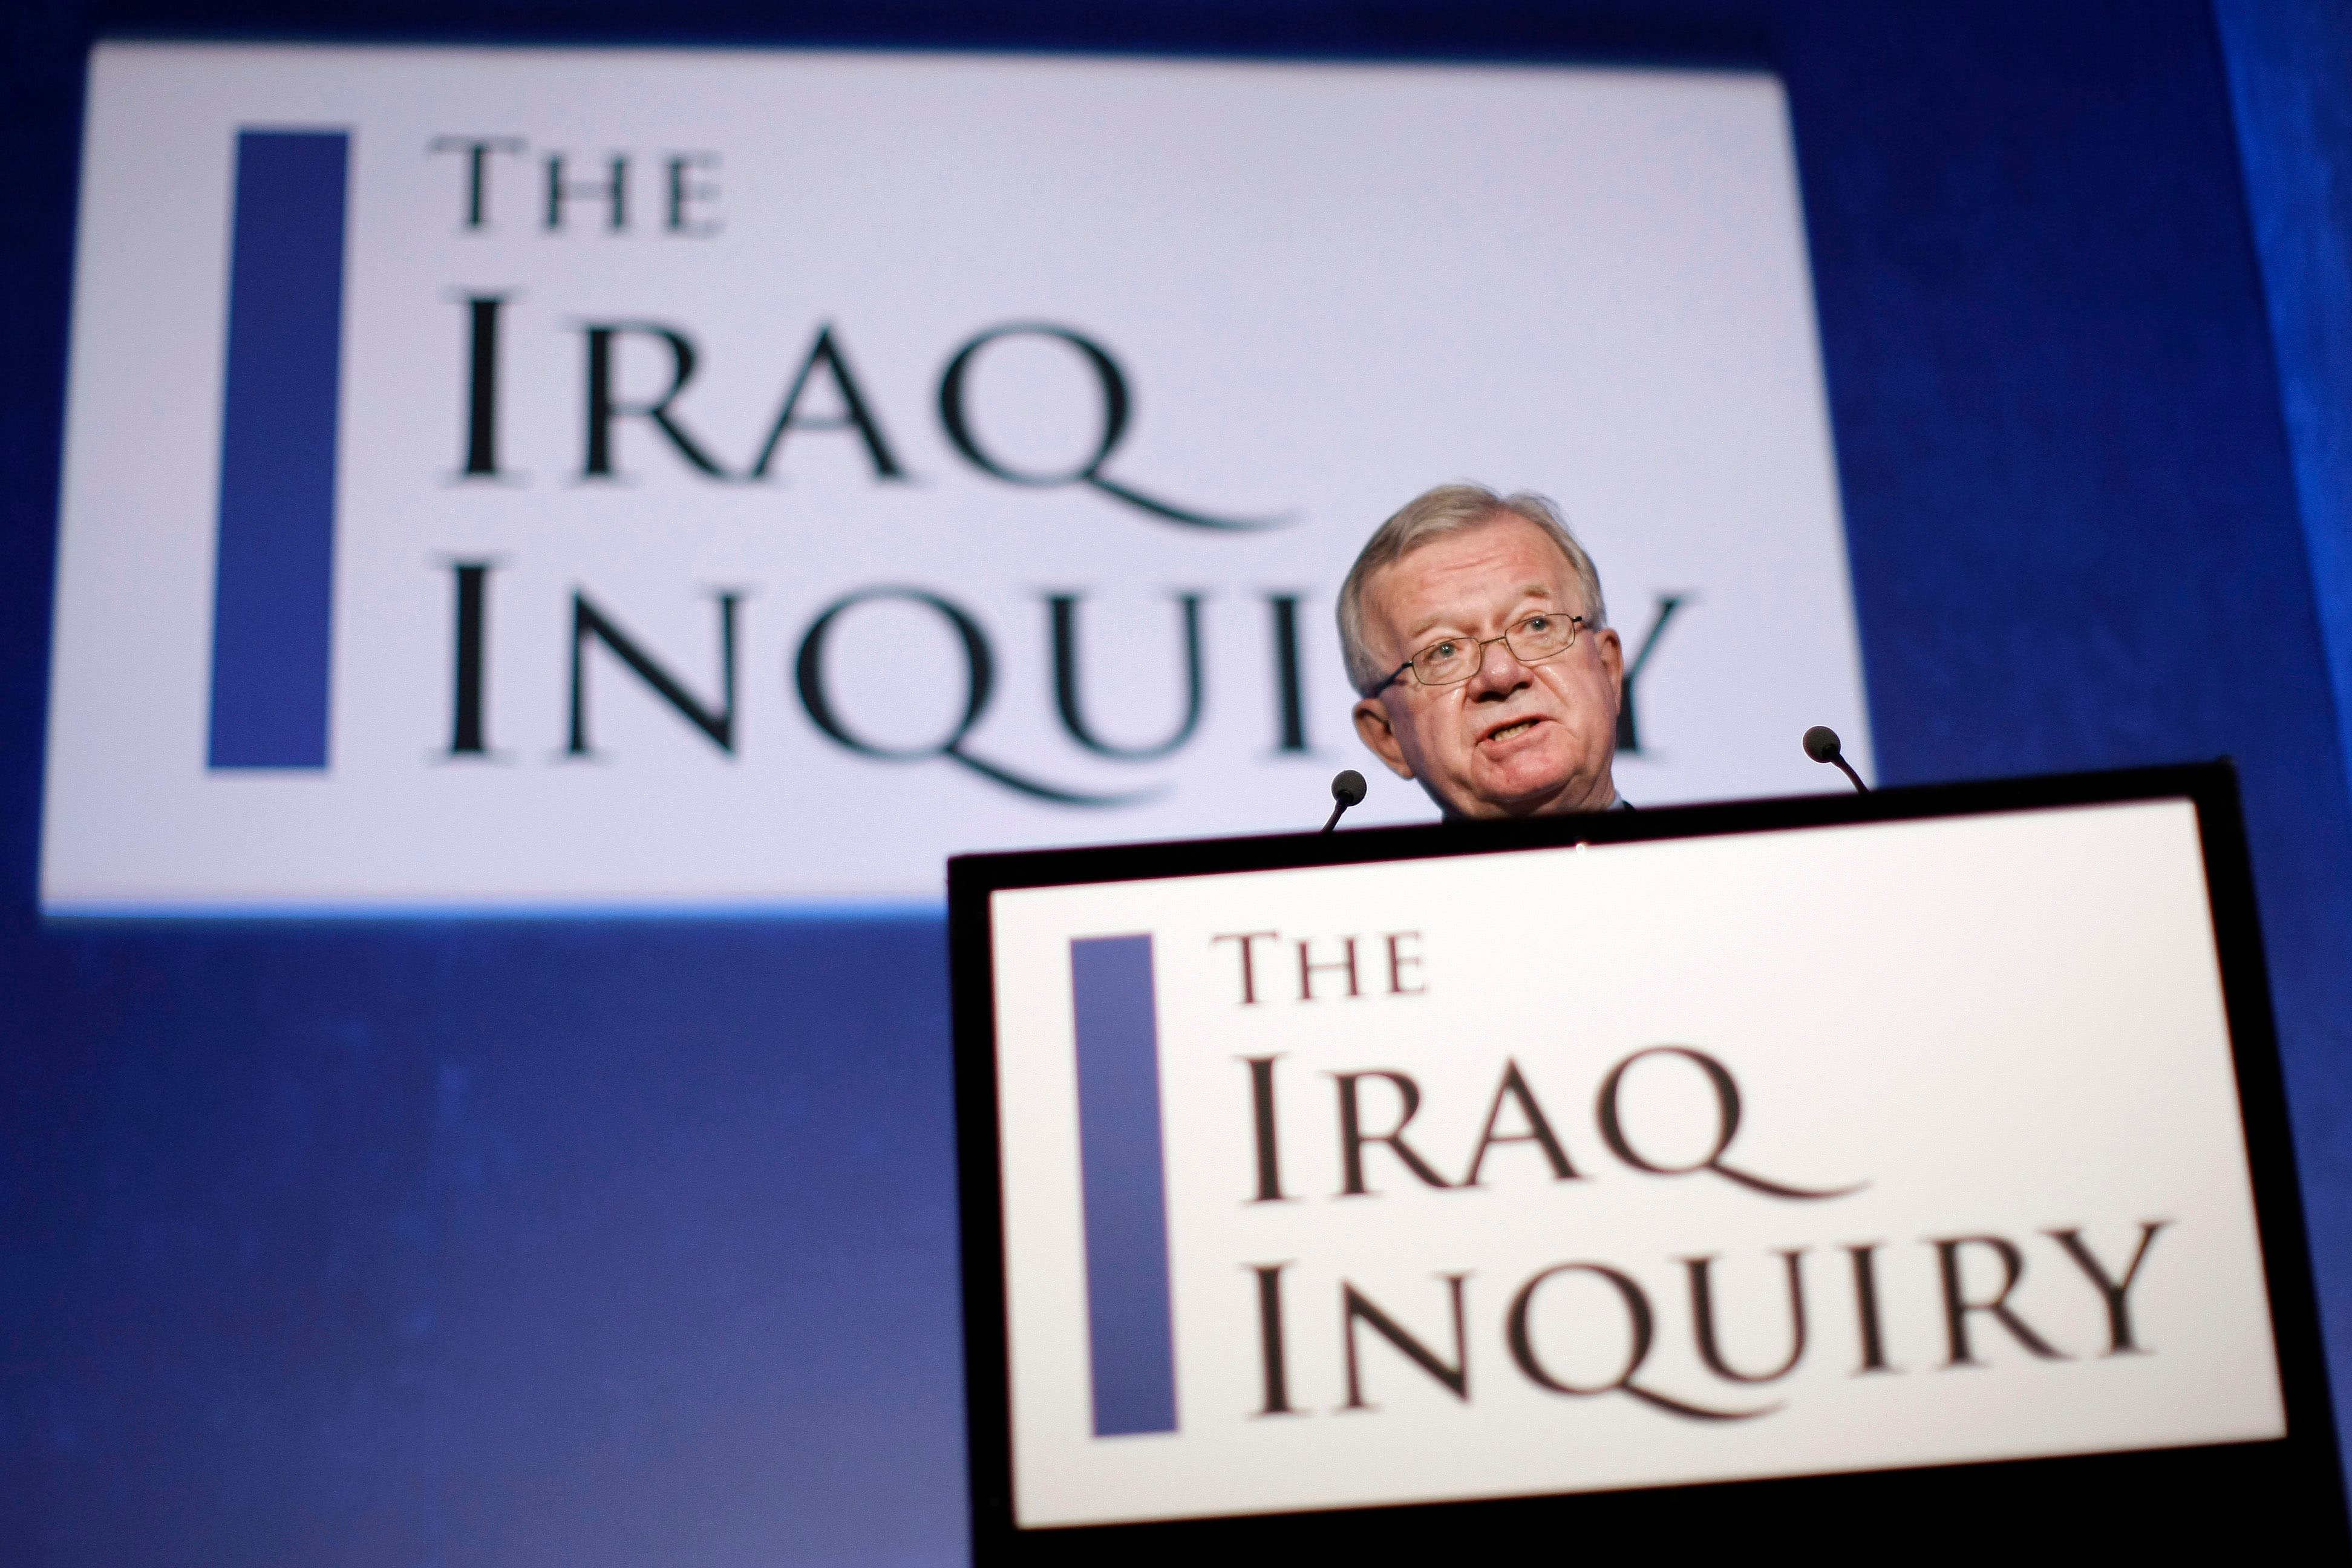 John Chilcot, the Chairman of the Iraq Inquiry. (AFP Photo)